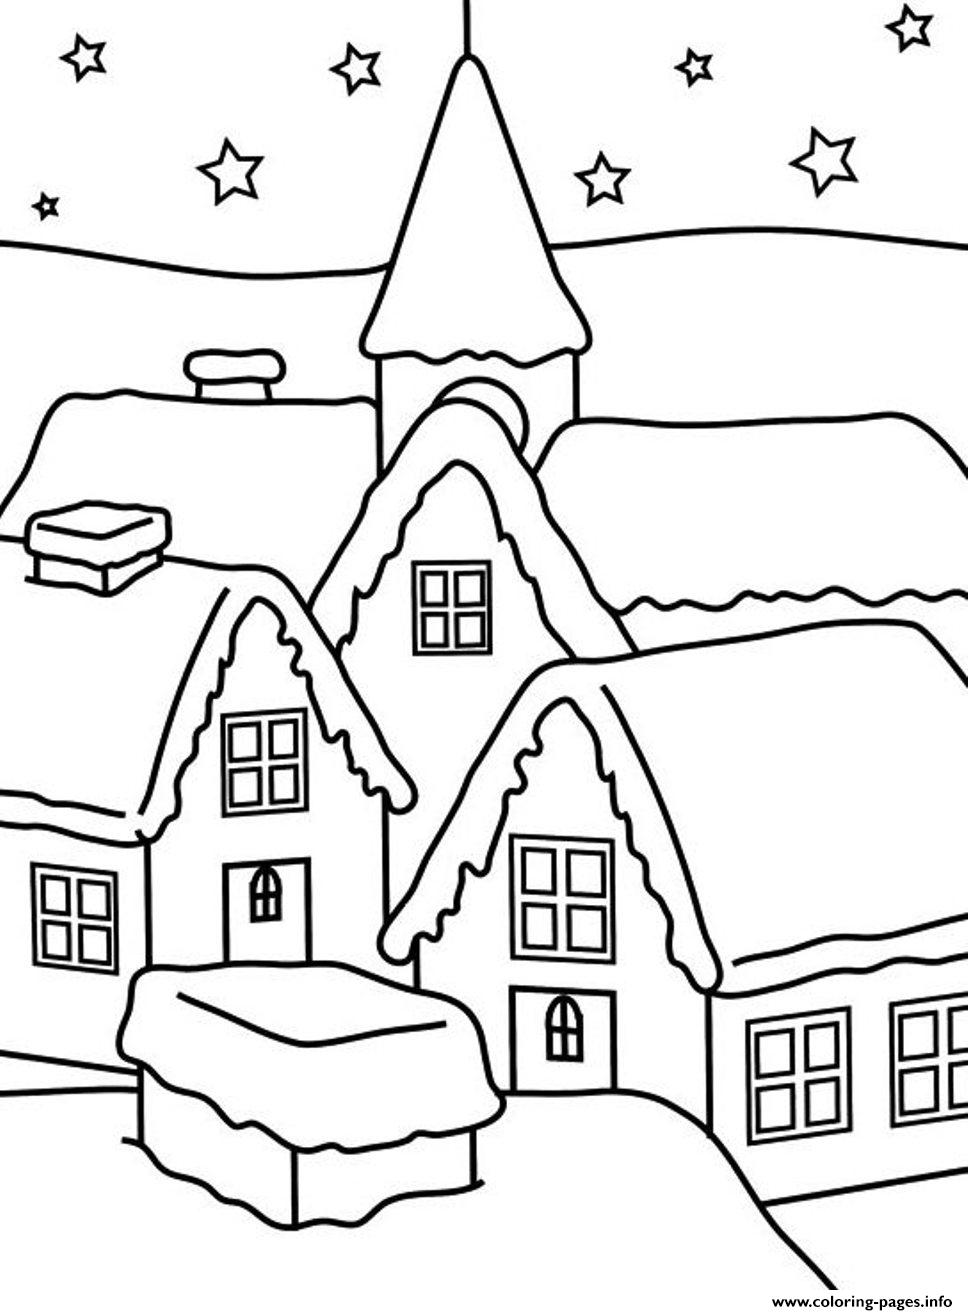 House Of Winter S For Kids2411 Coloring Pages Print Download 324 Prints 2016 01 14